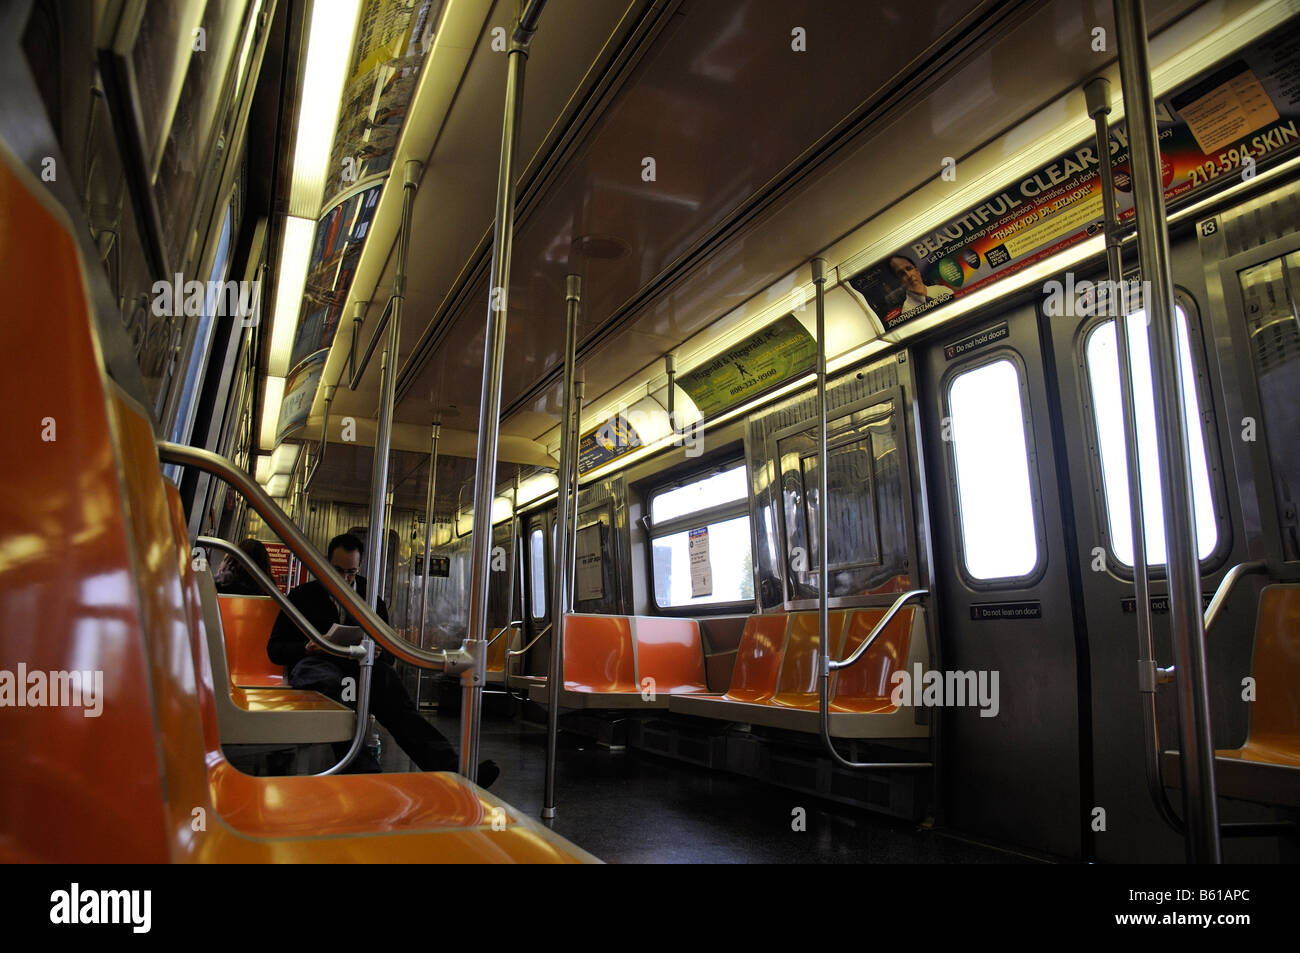 interior of new york subway train america usa stock photo royalty free image 20928724 alamy. Black Bedroom Furniture Sets. Home Design Ideas